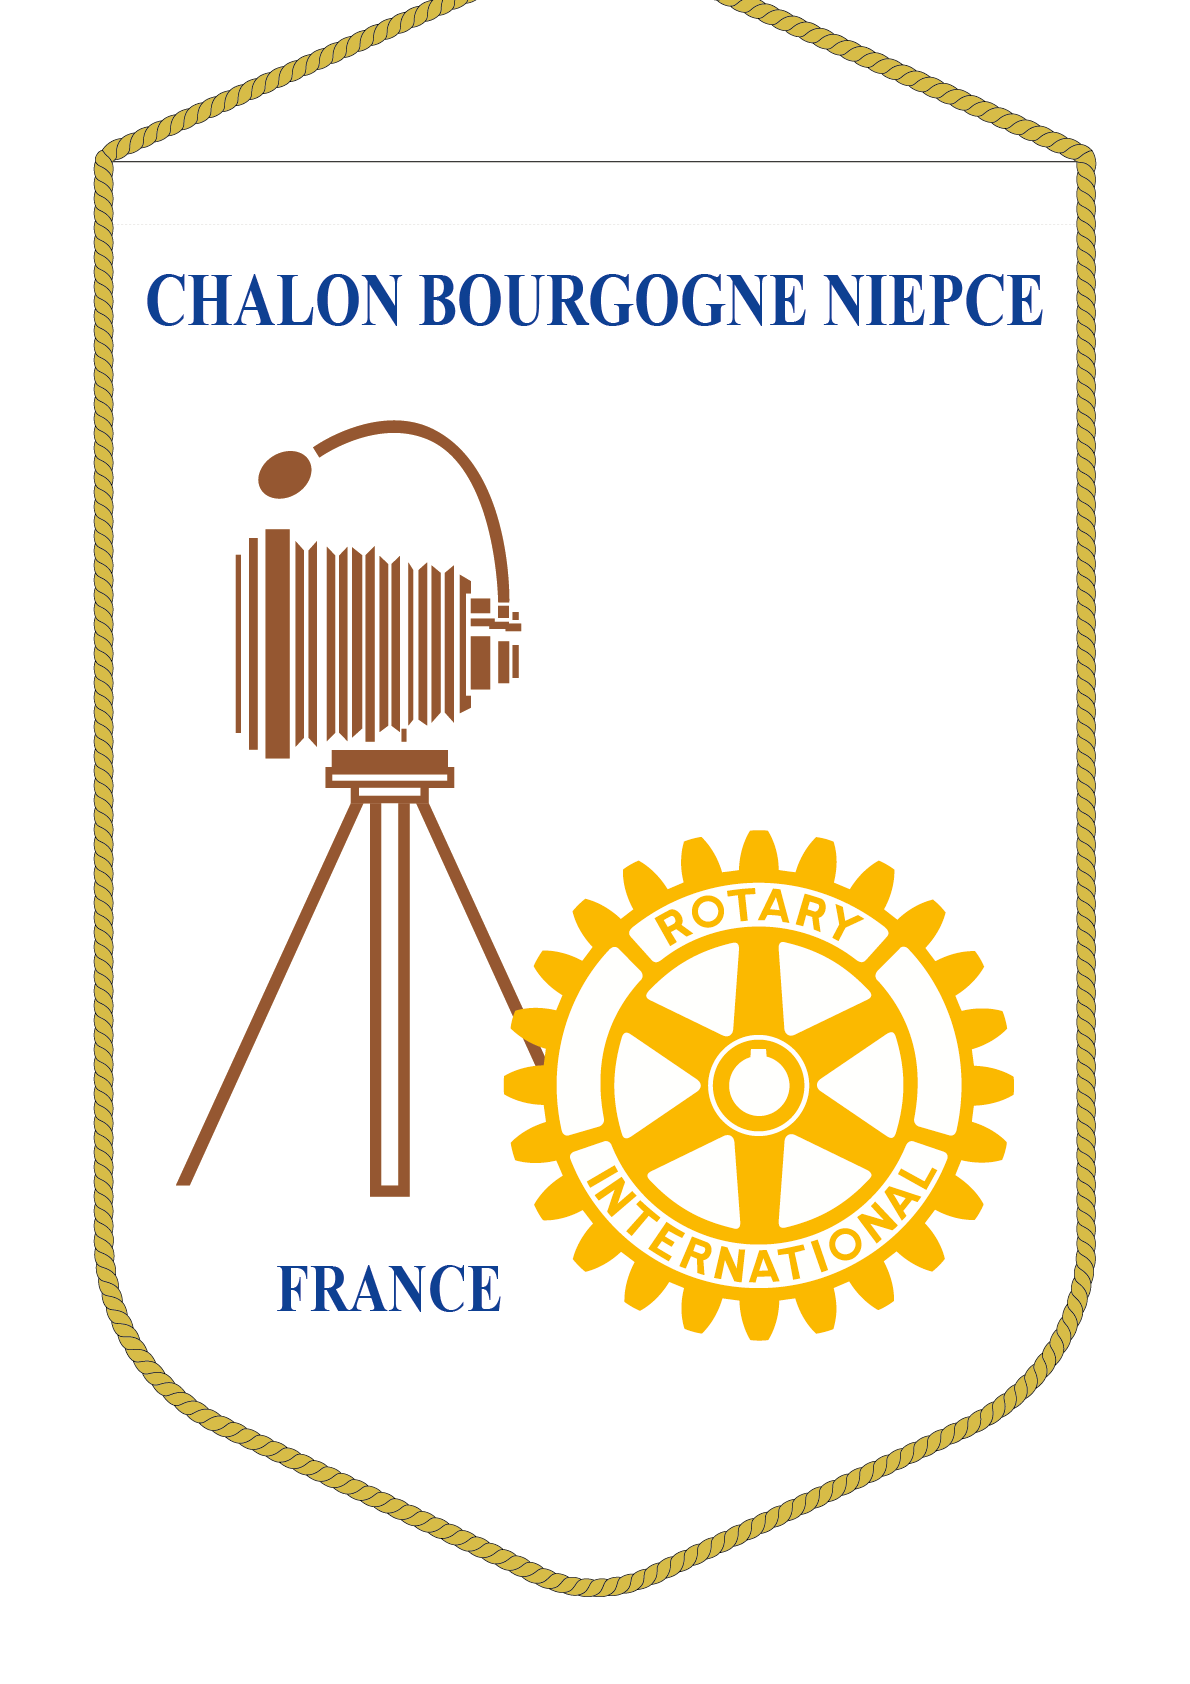 FANION ROTARY CLUB CHALON NIEPCE R